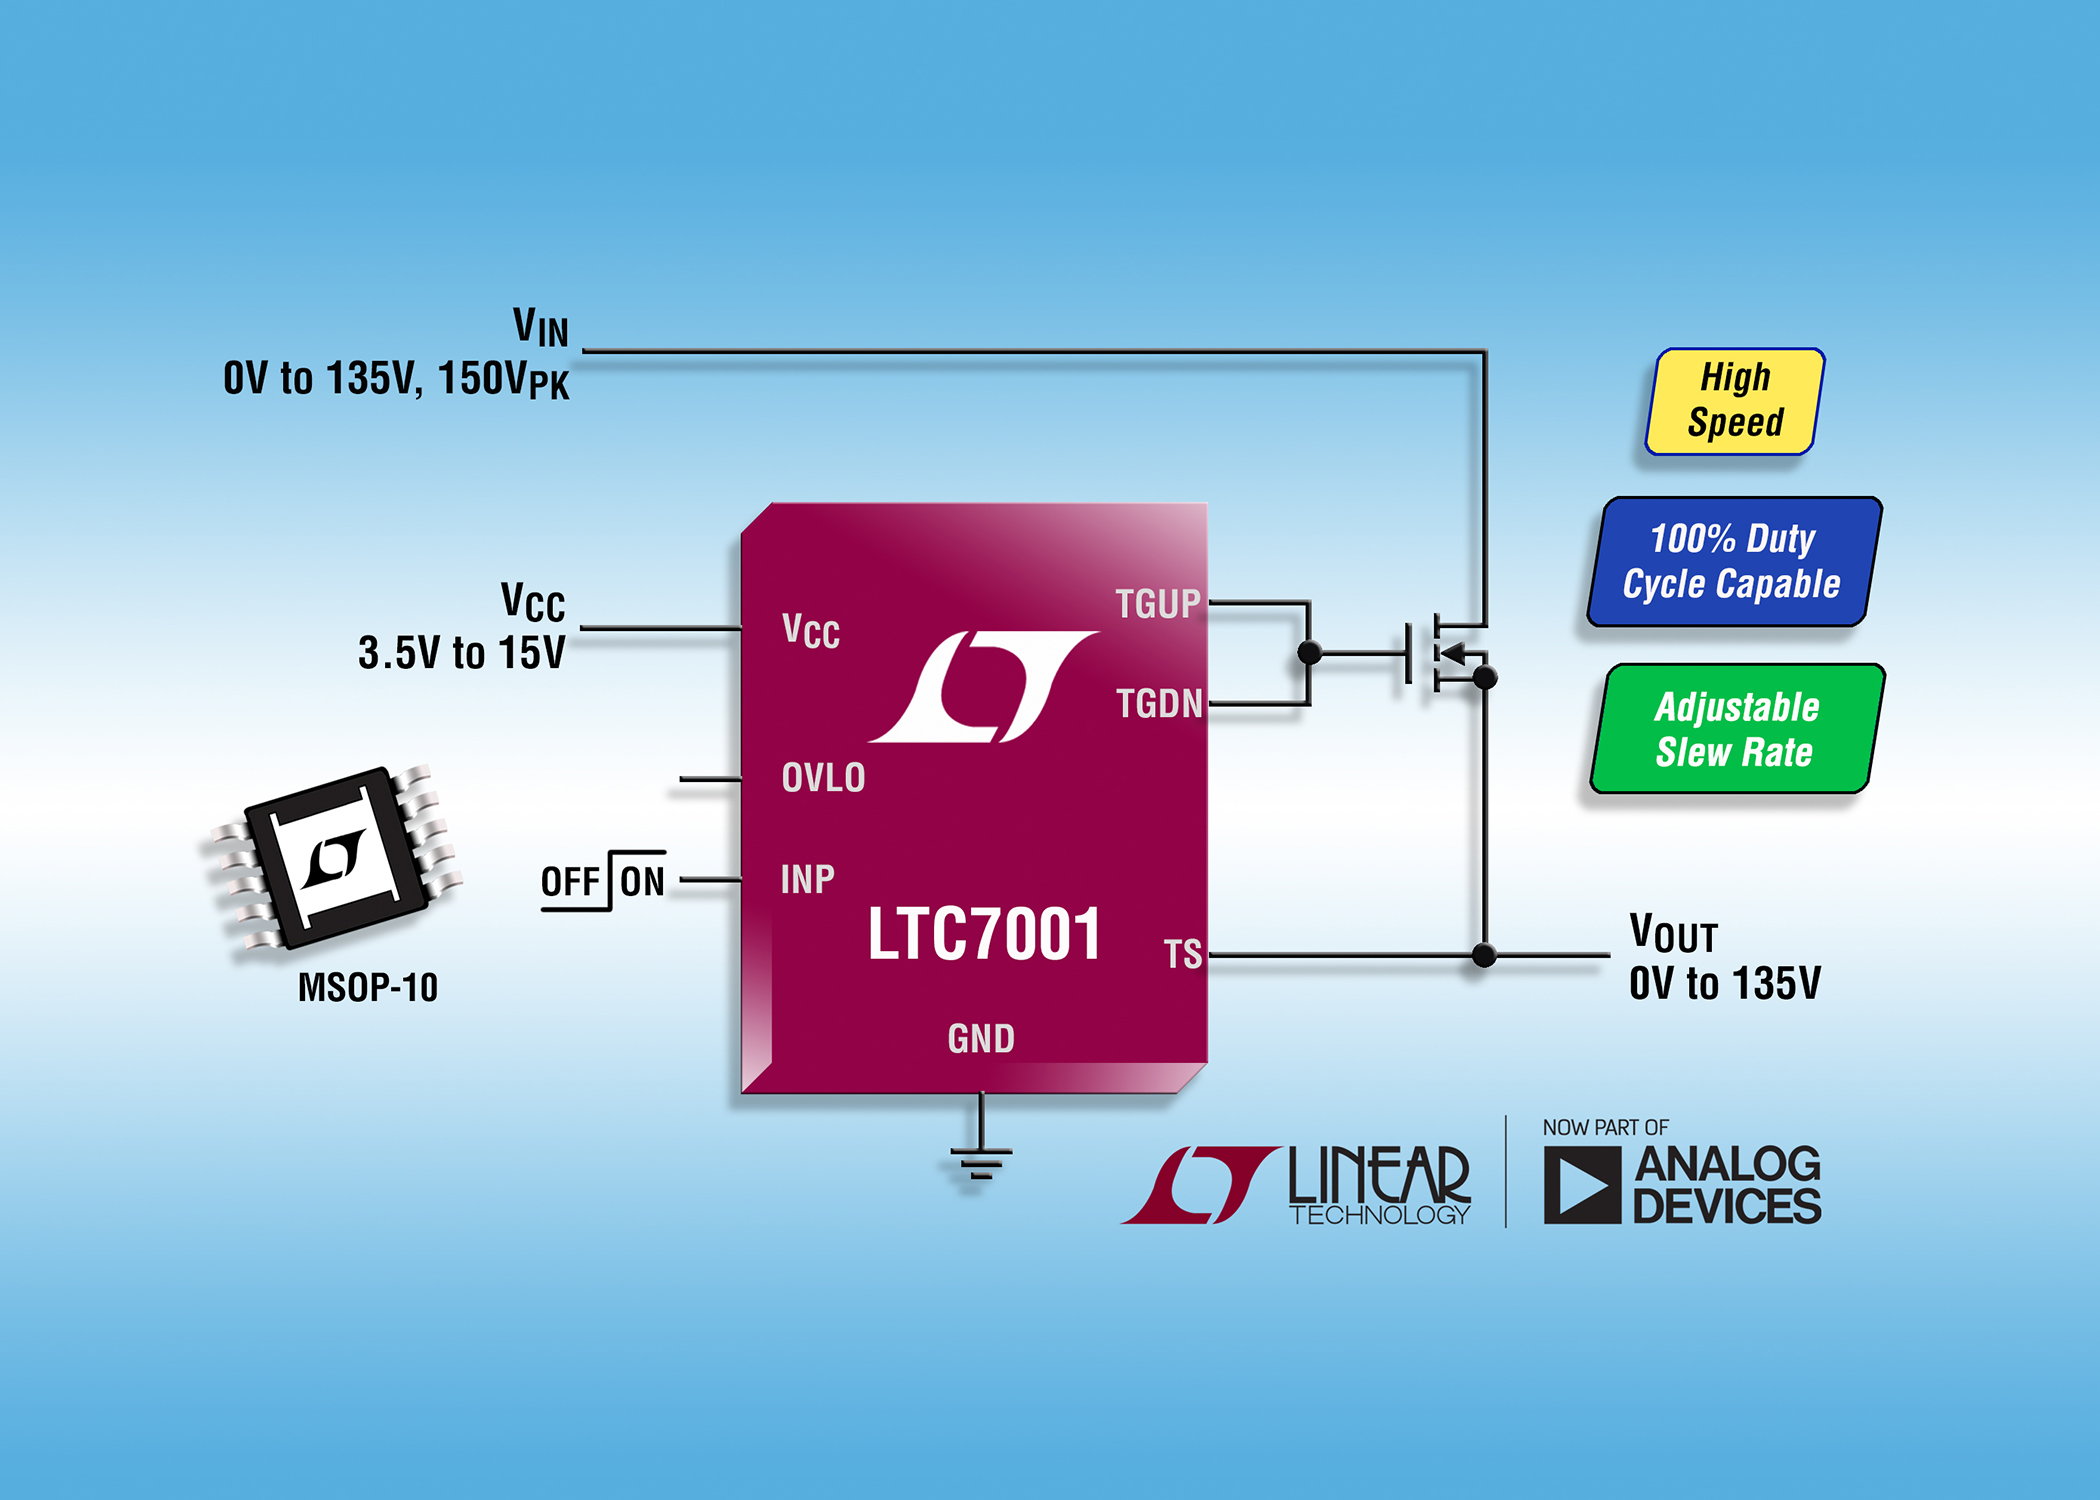 MOSFET driver provides 100% duty cycle capability